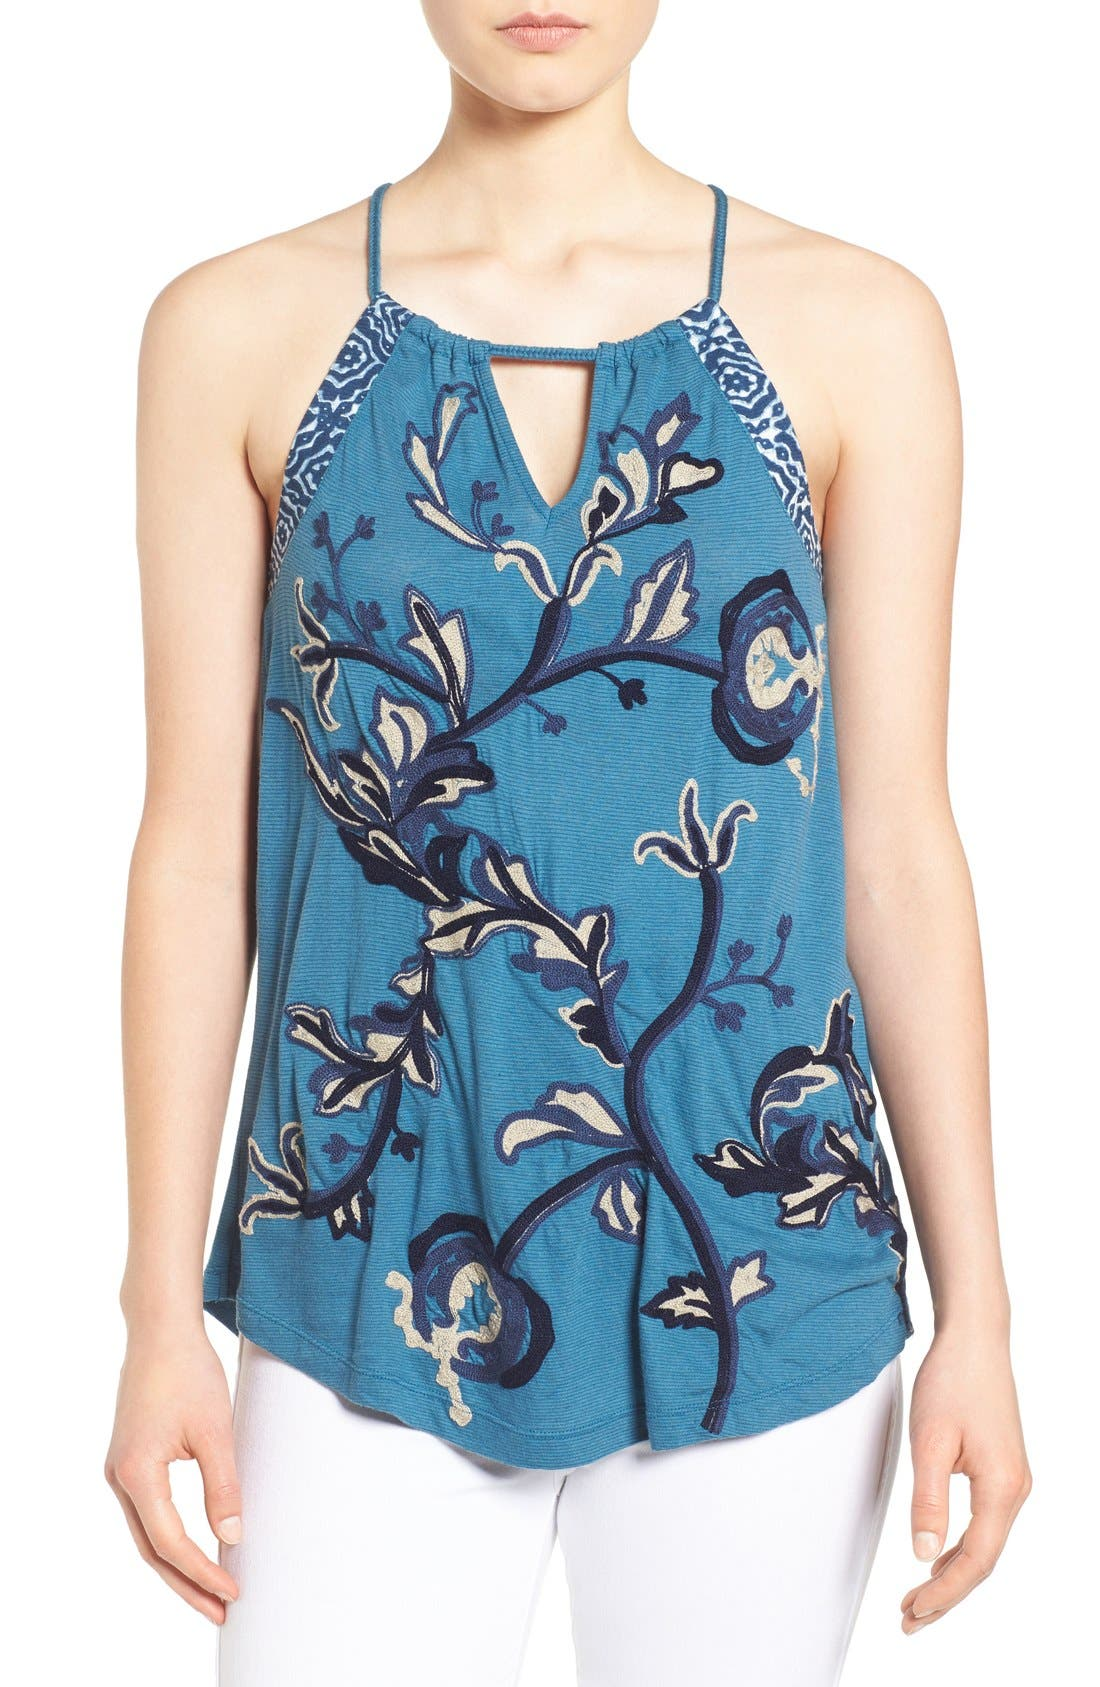 Alternate Image 1 Selected - Lucky Brand Embroidered Keyhole Tank